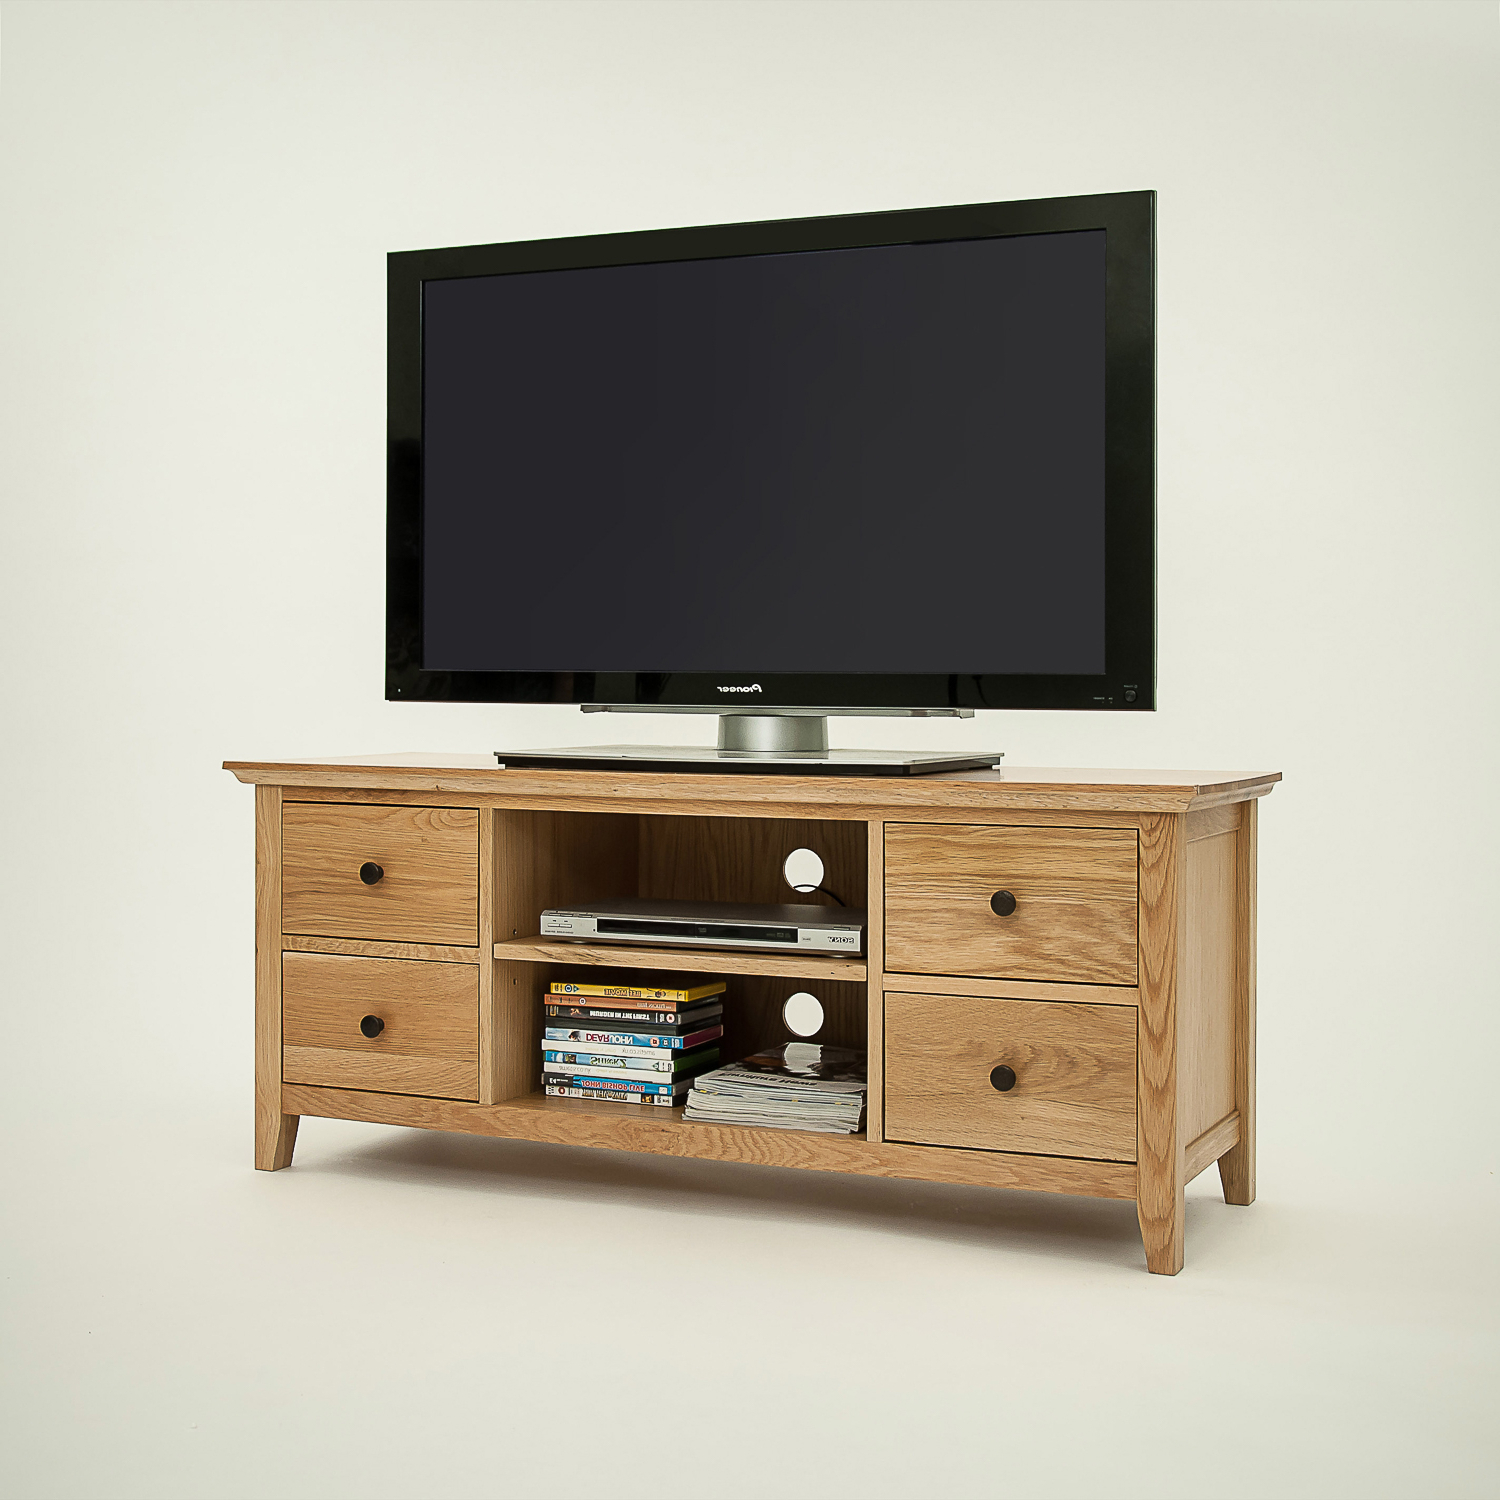 Wide Oak Tv Units Throughout Preferred Hereford Rustic Oak Wide Tv Unit – Cw Furniture (View 18 of 20)